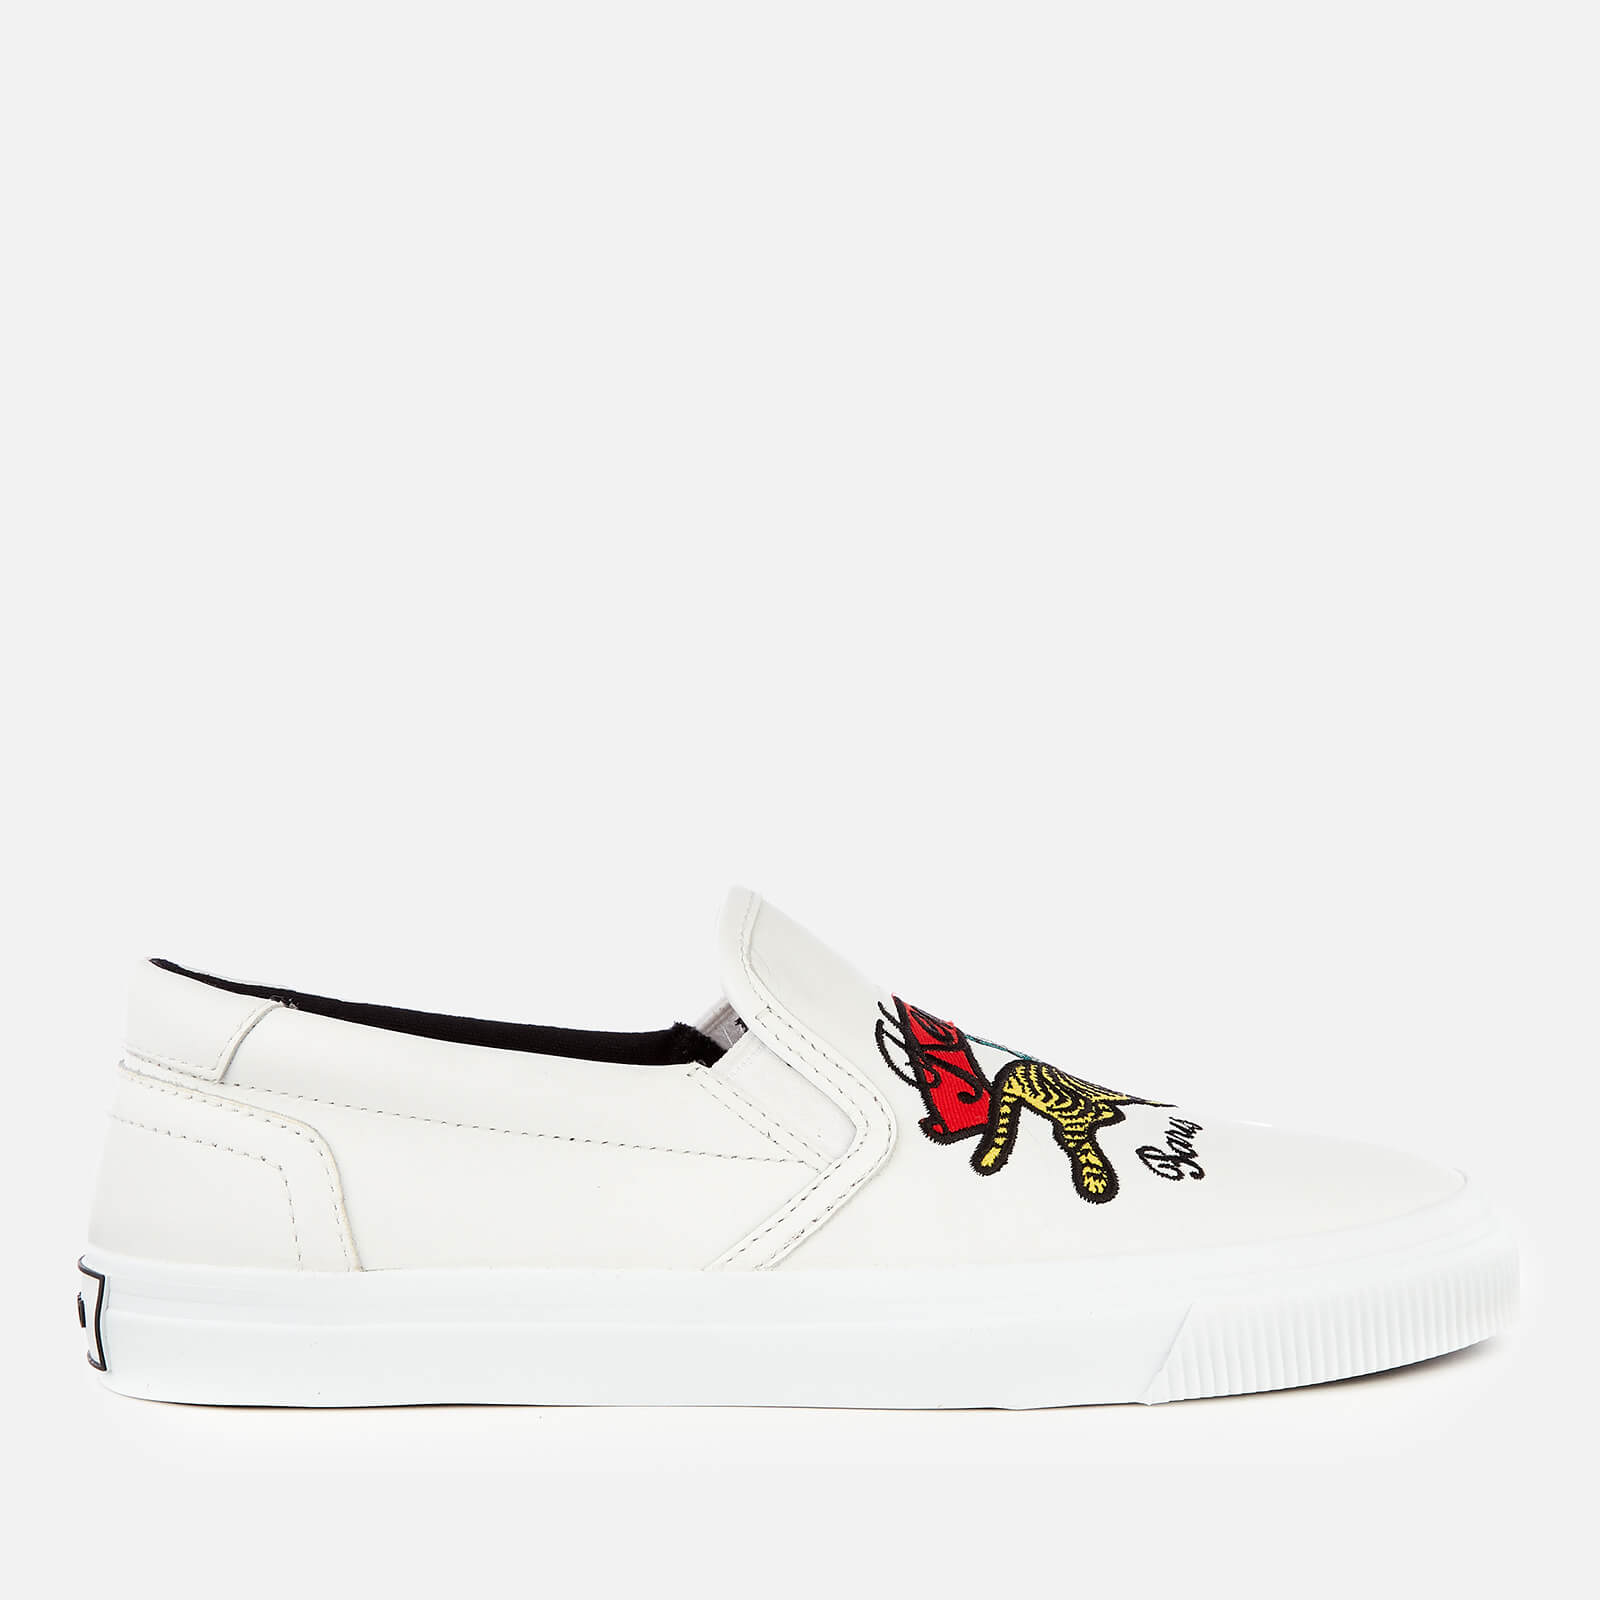 8c33be94fa6 KENZO Women s K-Skate Jumping Tiger Slip-On Trainers - White - Free UK  Delivery over £50